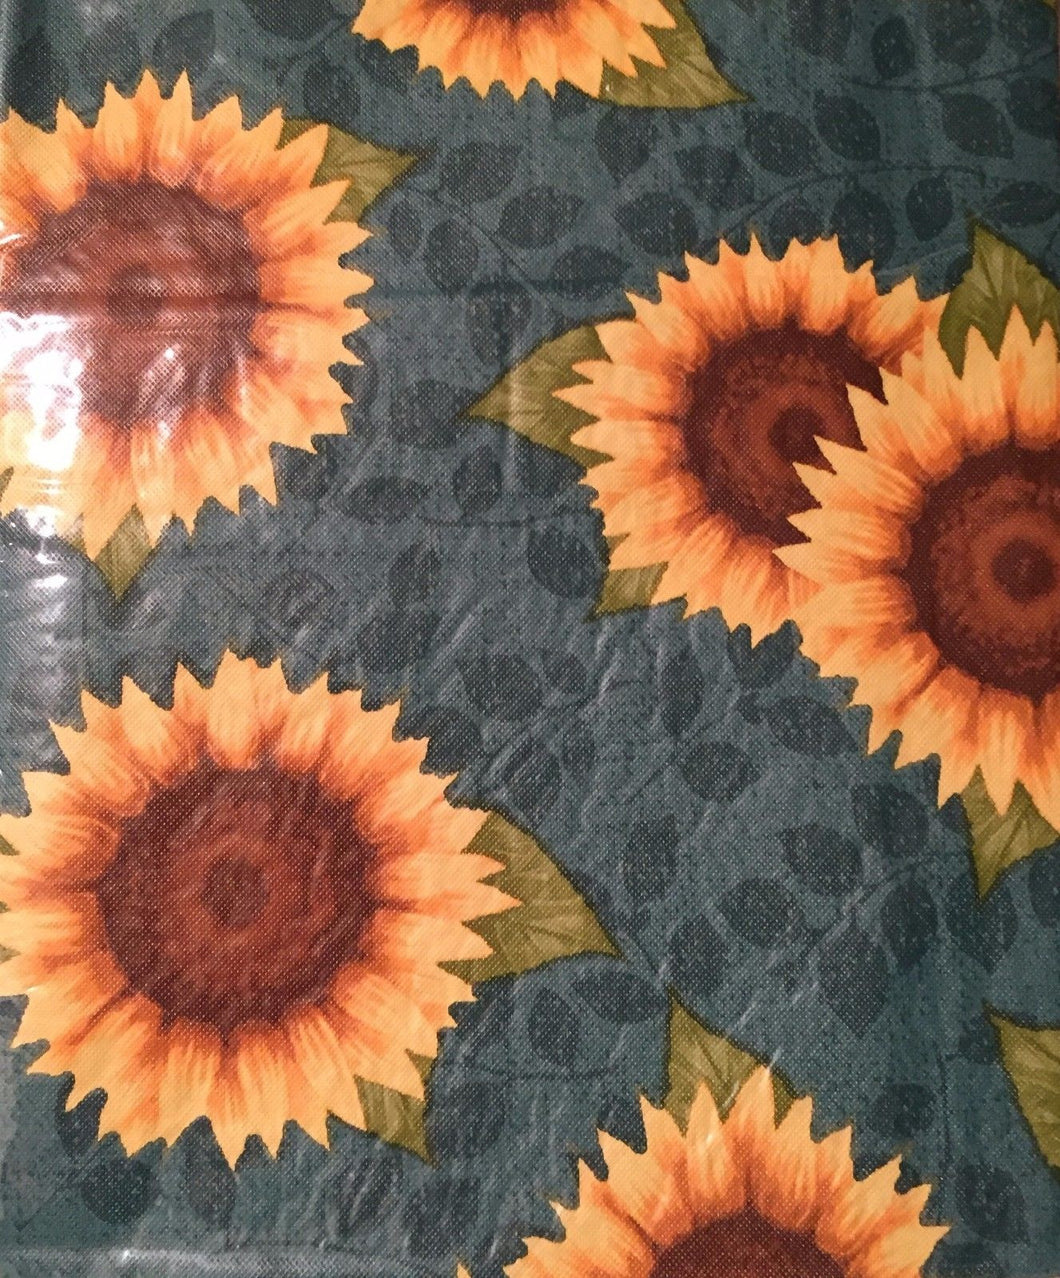 Blue Sunflowers Vinyl Flannel Back Tablecloth 52x70 Oblong